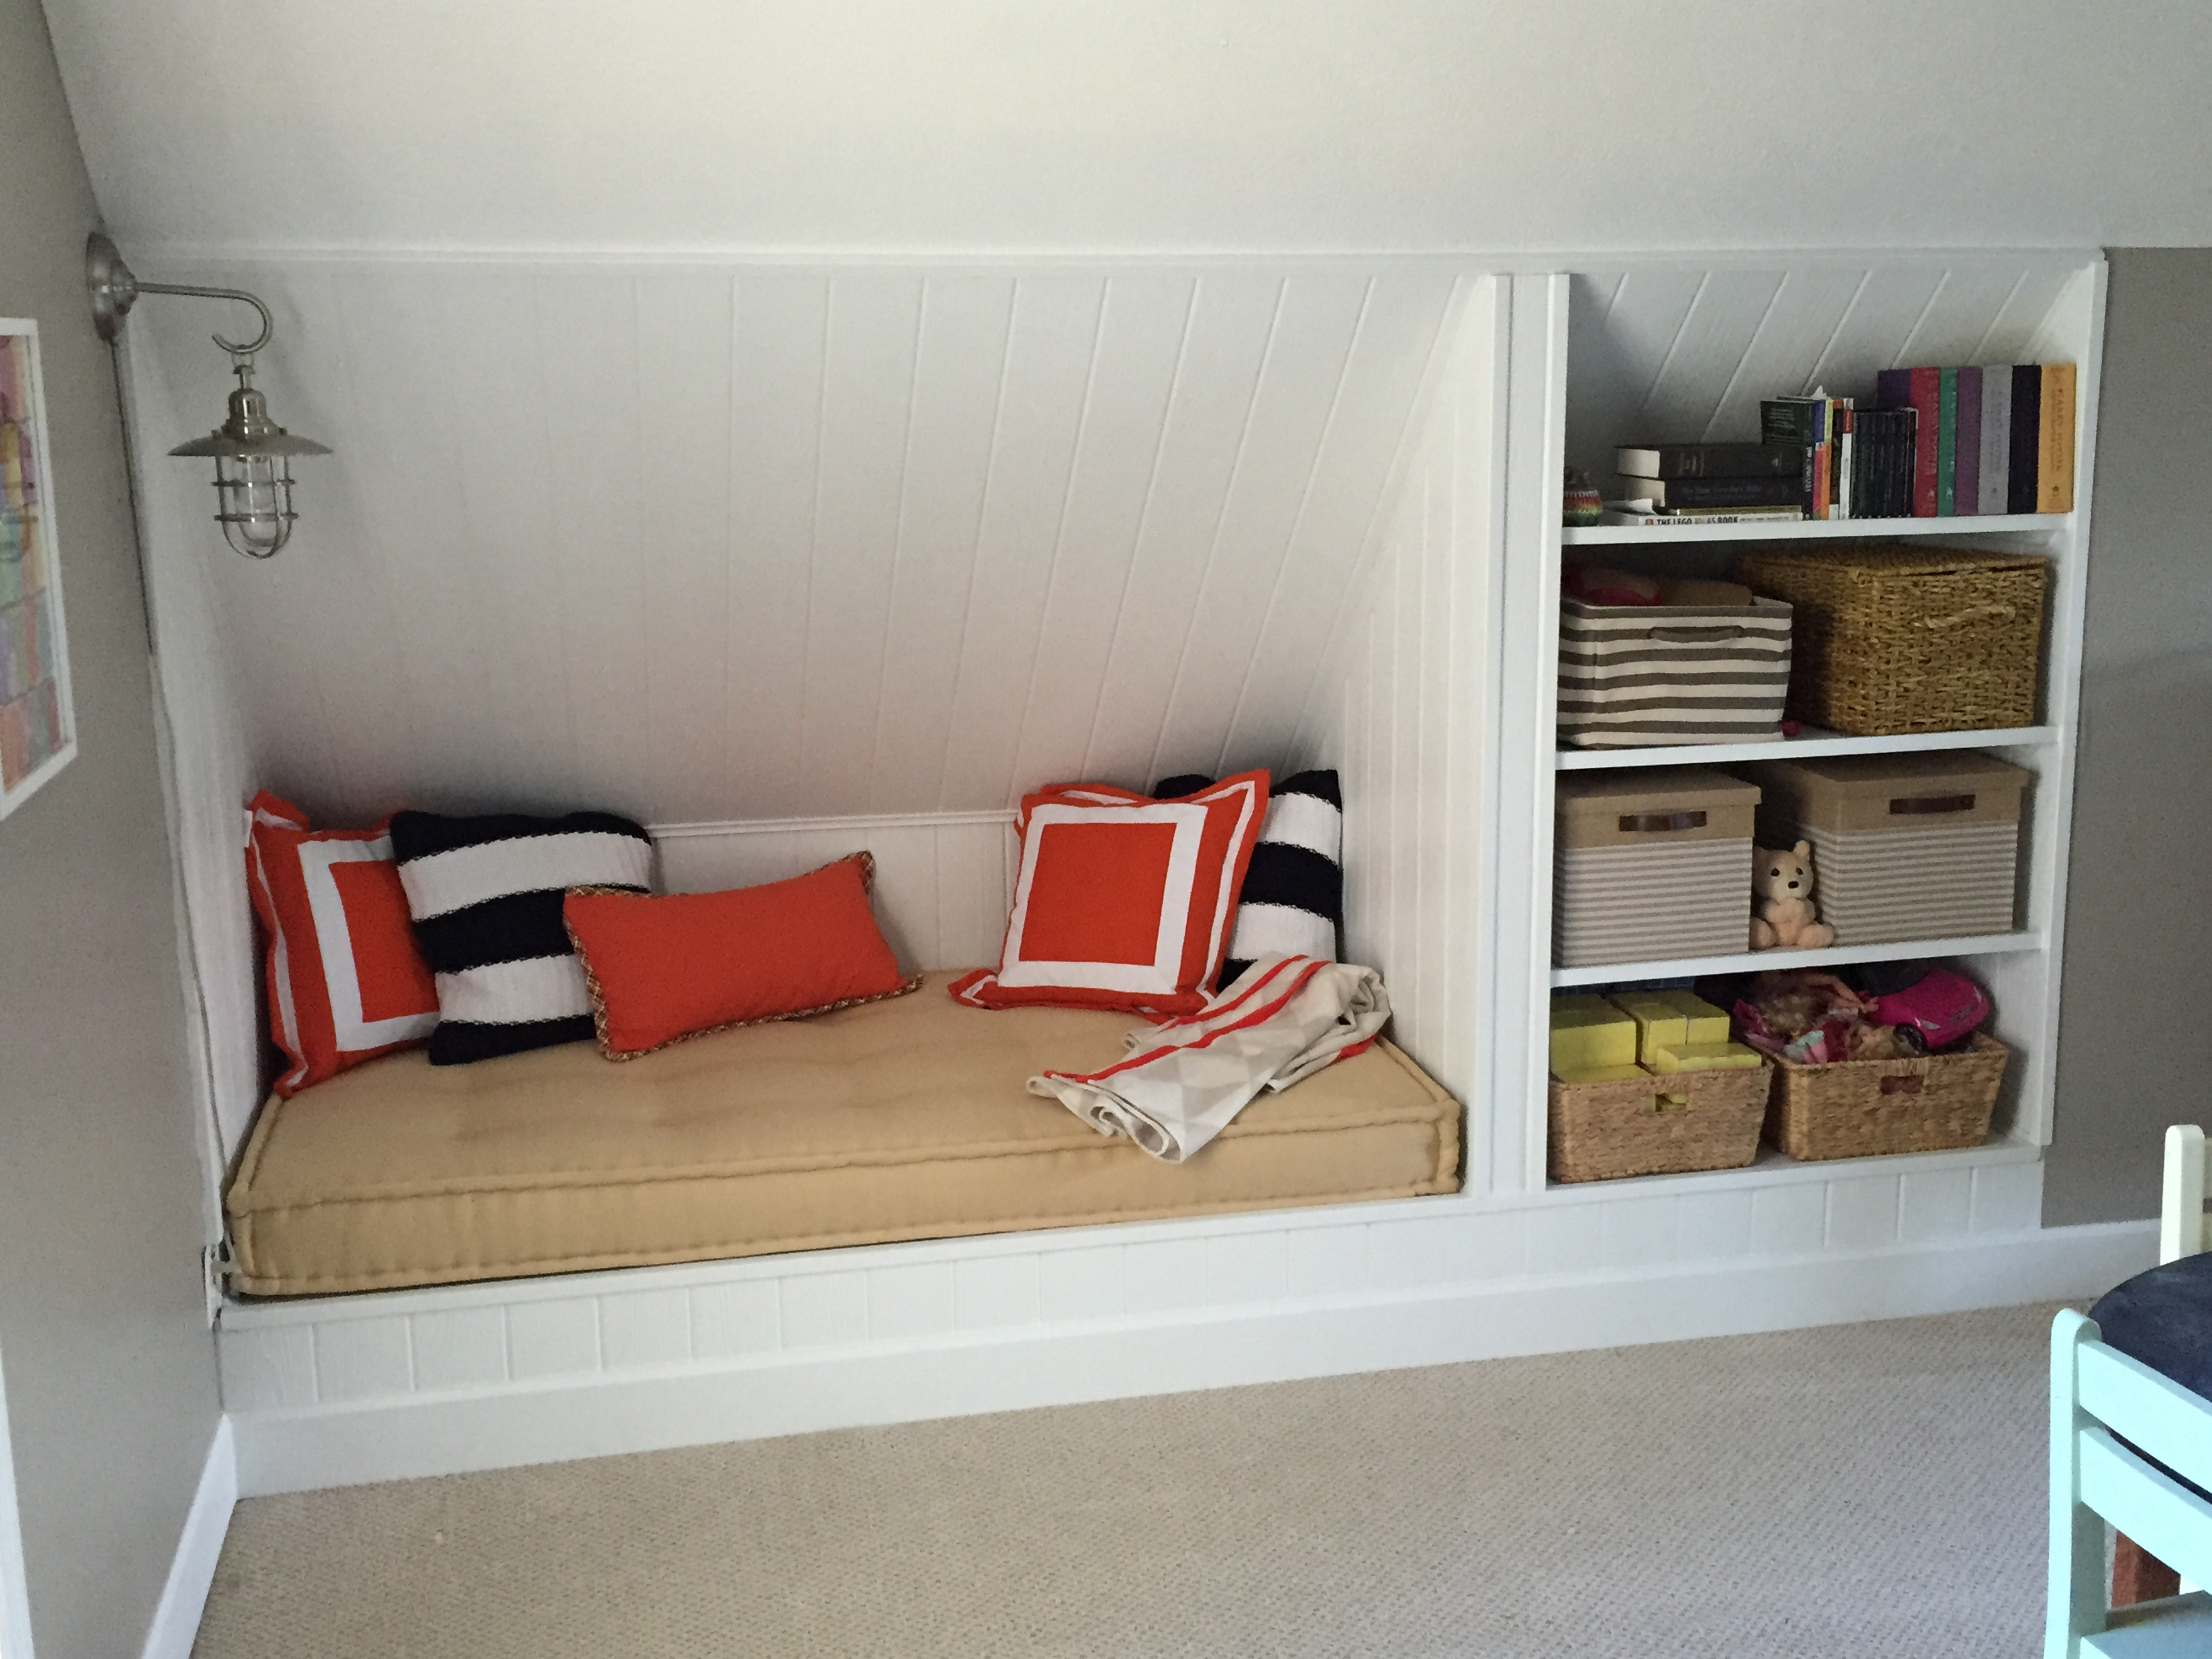 Built-in Daybed And Shelves – Lefty Loosey